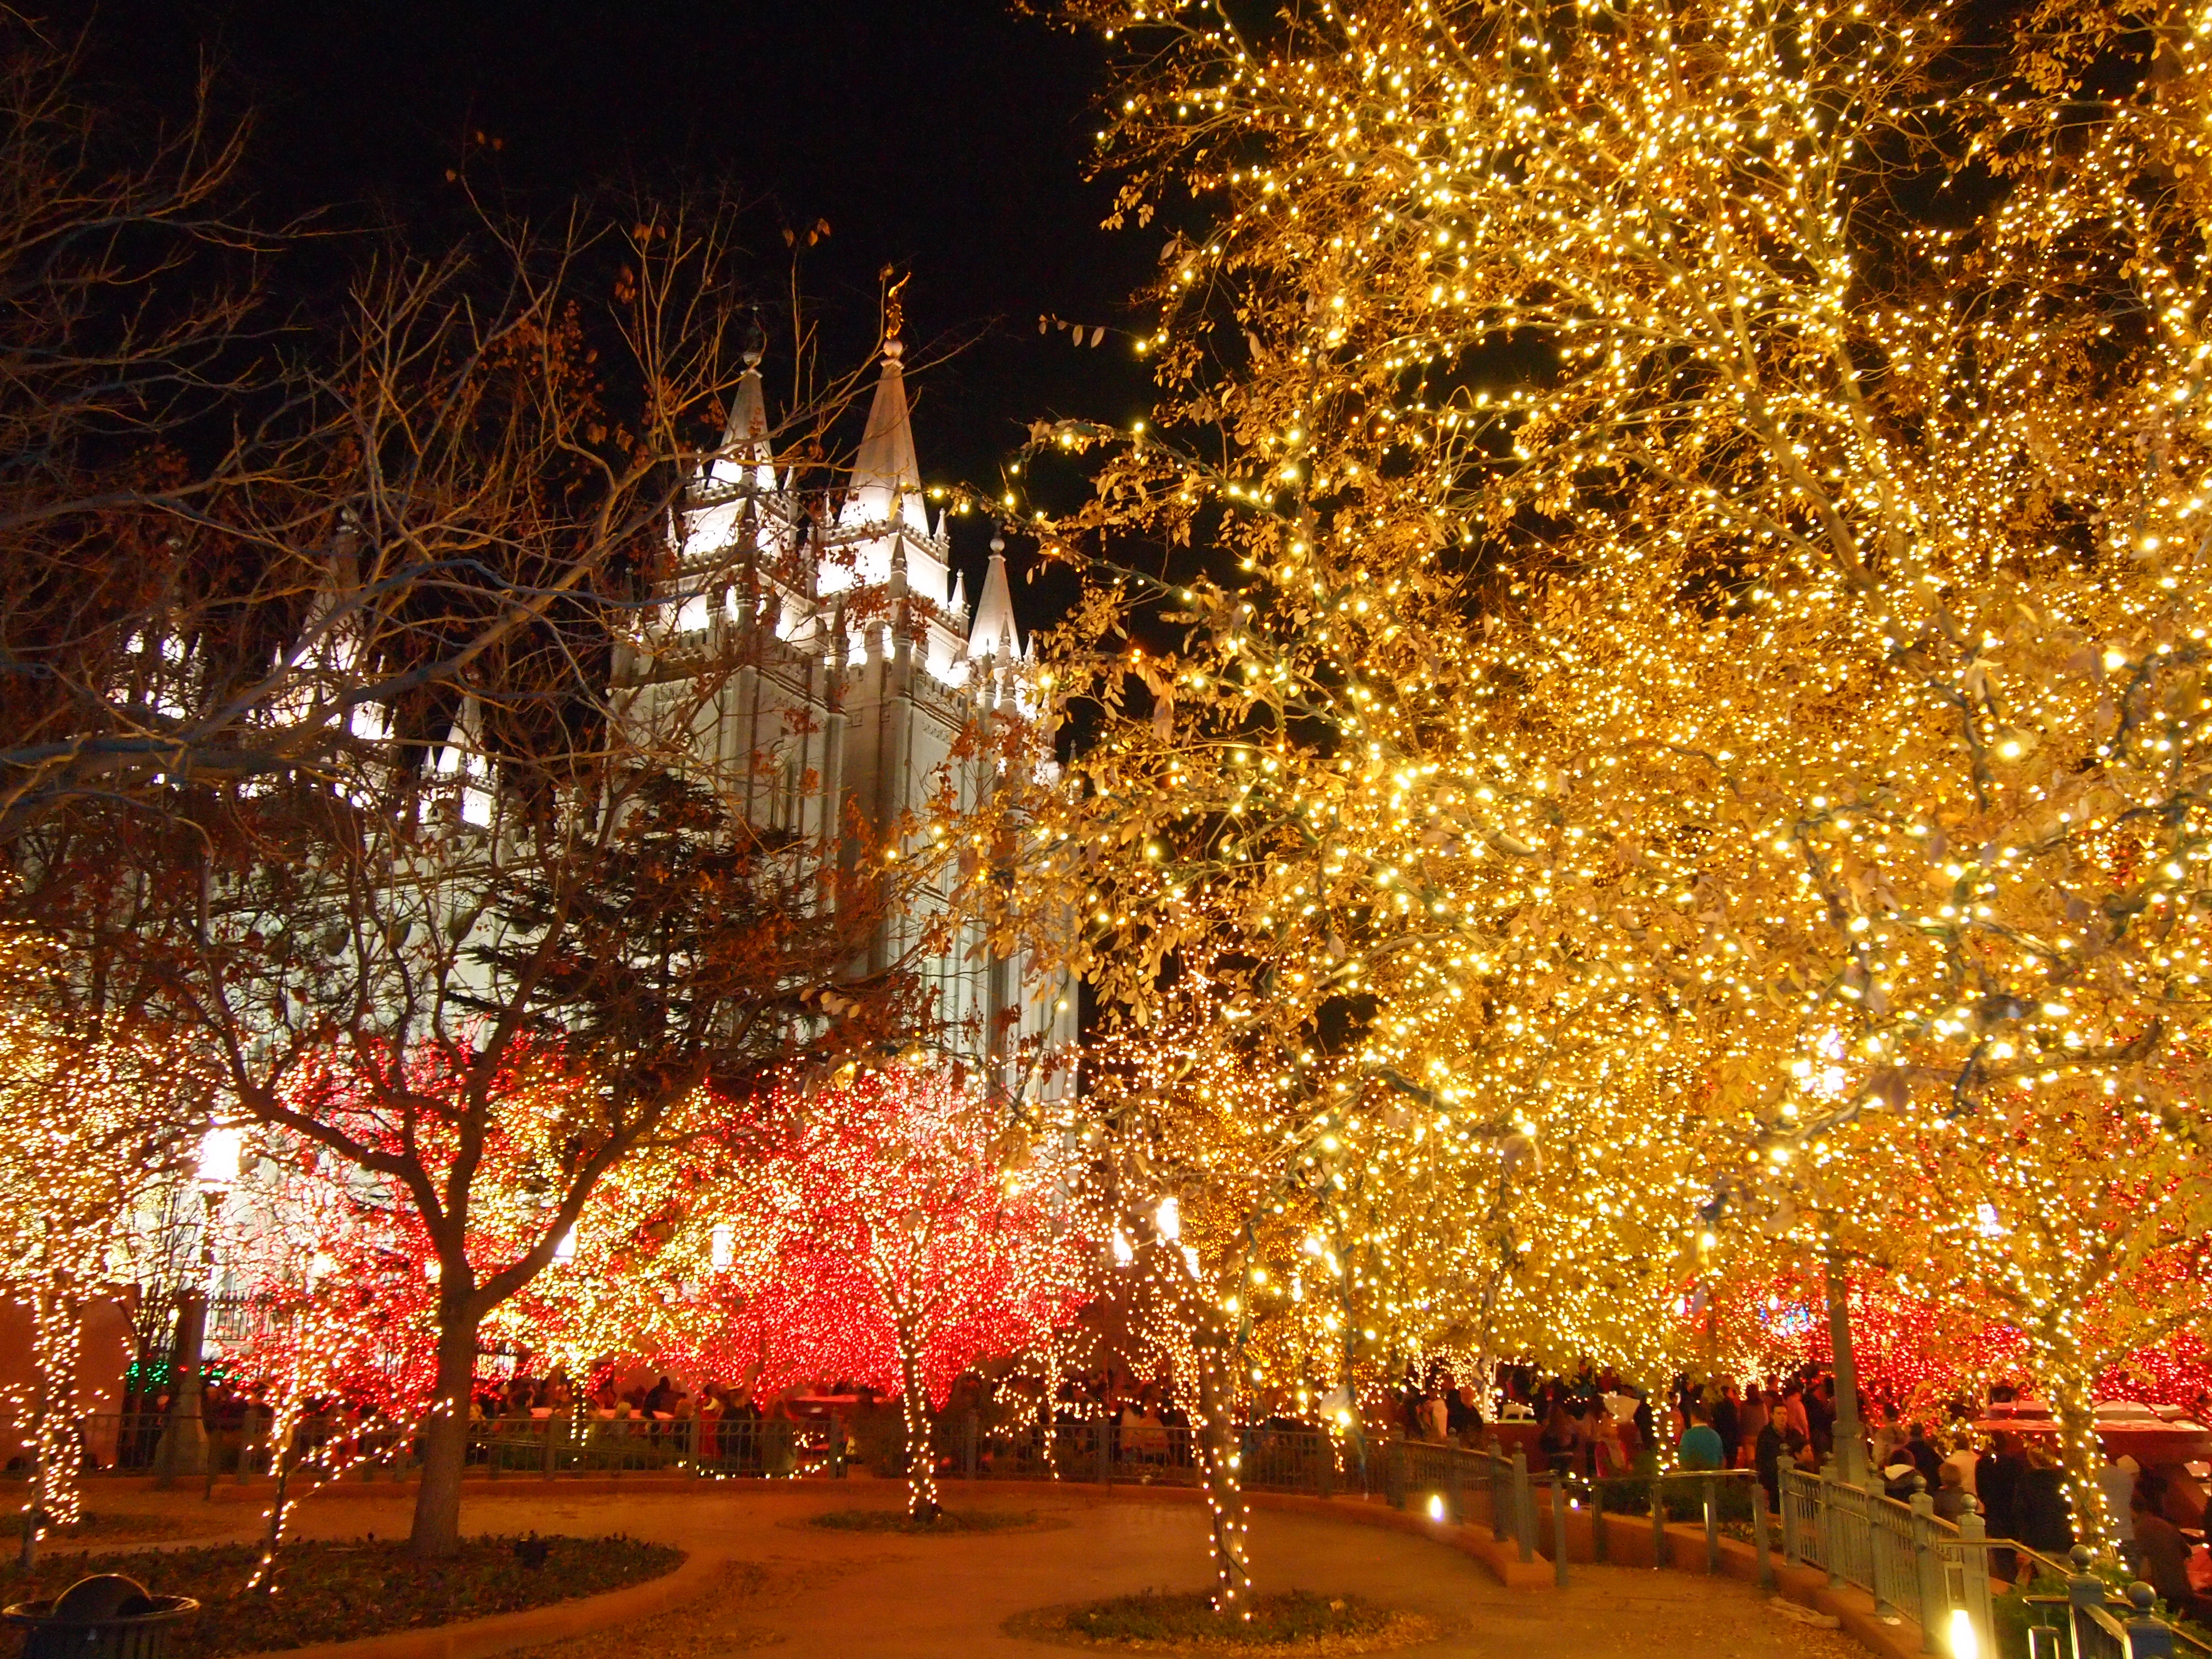 Temple Square lights11 2014